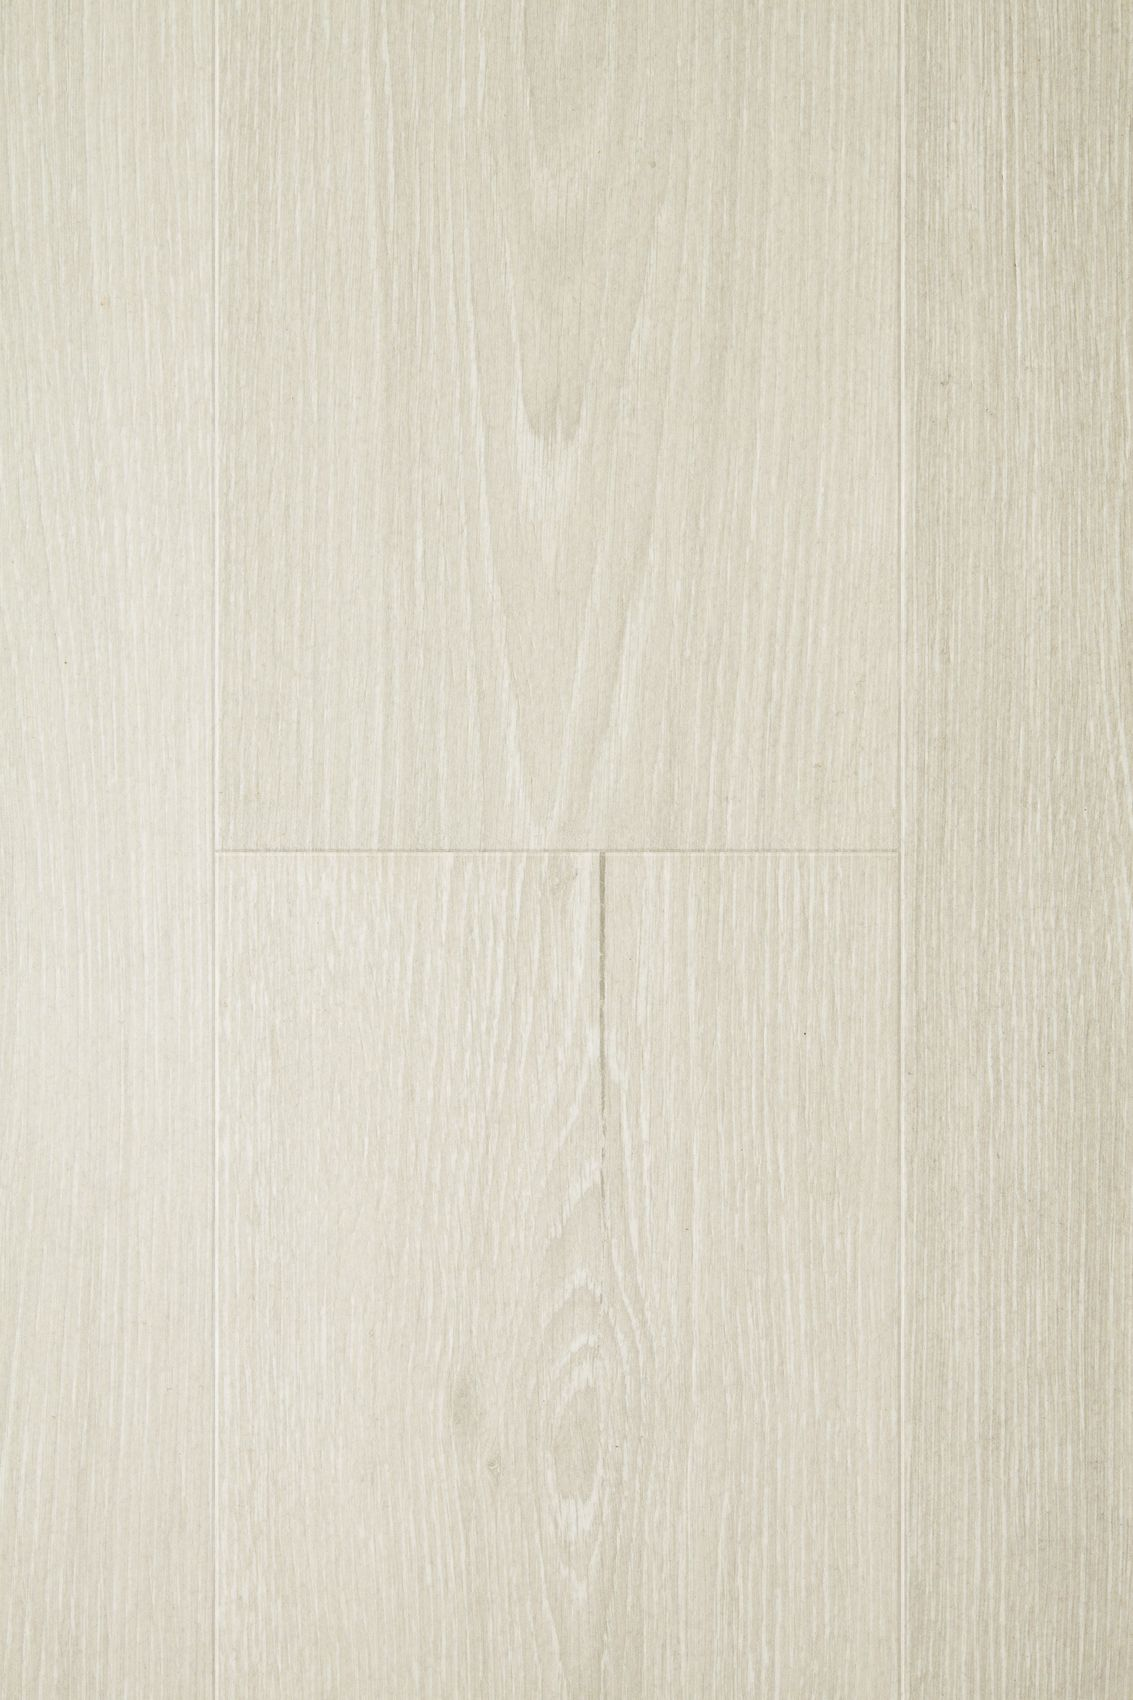 Korkkilankkulattia Wicanders Wood Essence Washed Haze Oak 11,5x185x1830 mm